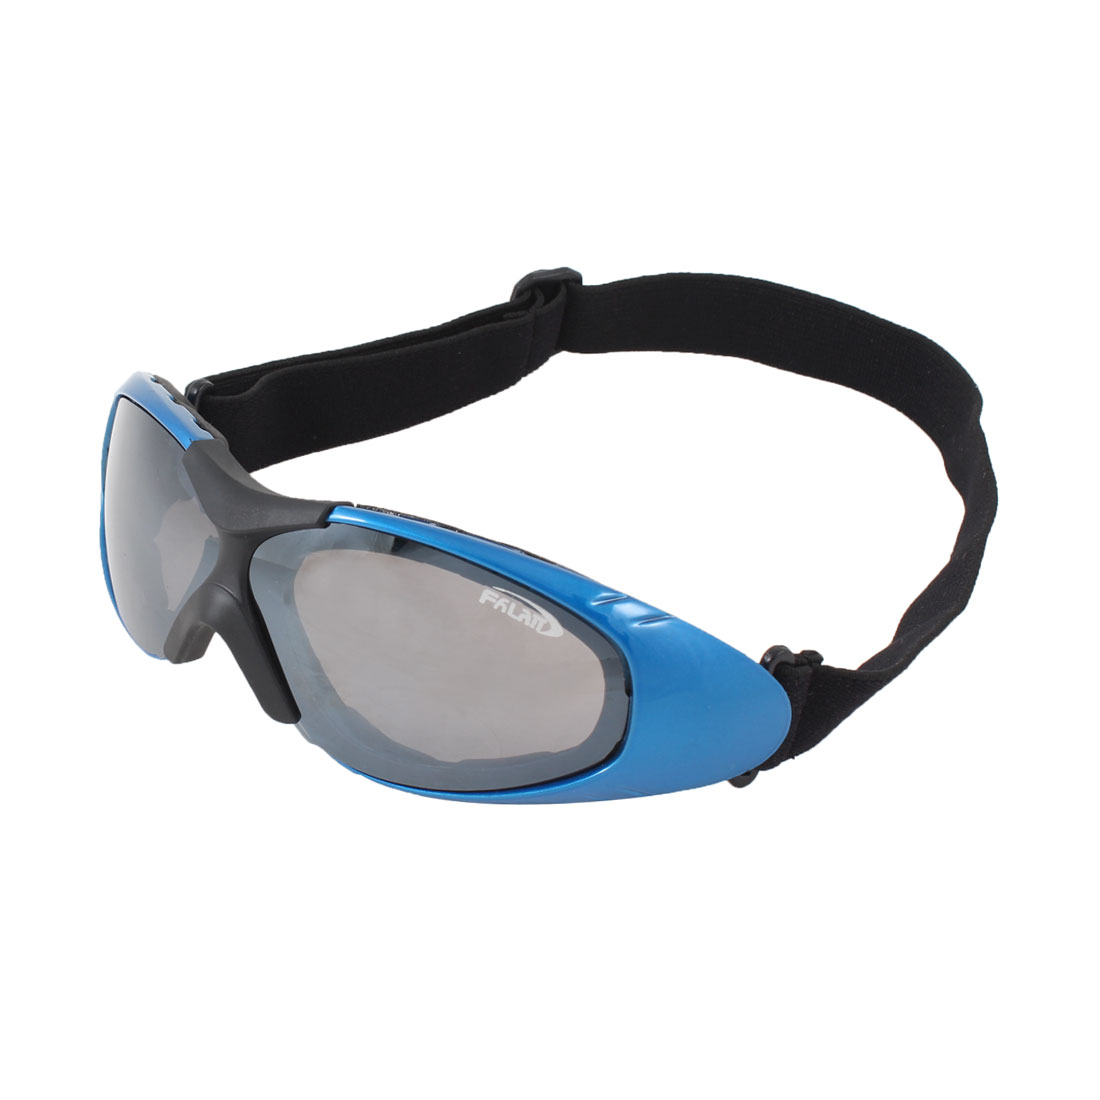 Ski Sports Wargame Riding Mountain Climbing Goggles Sunglasses Mirror Blue